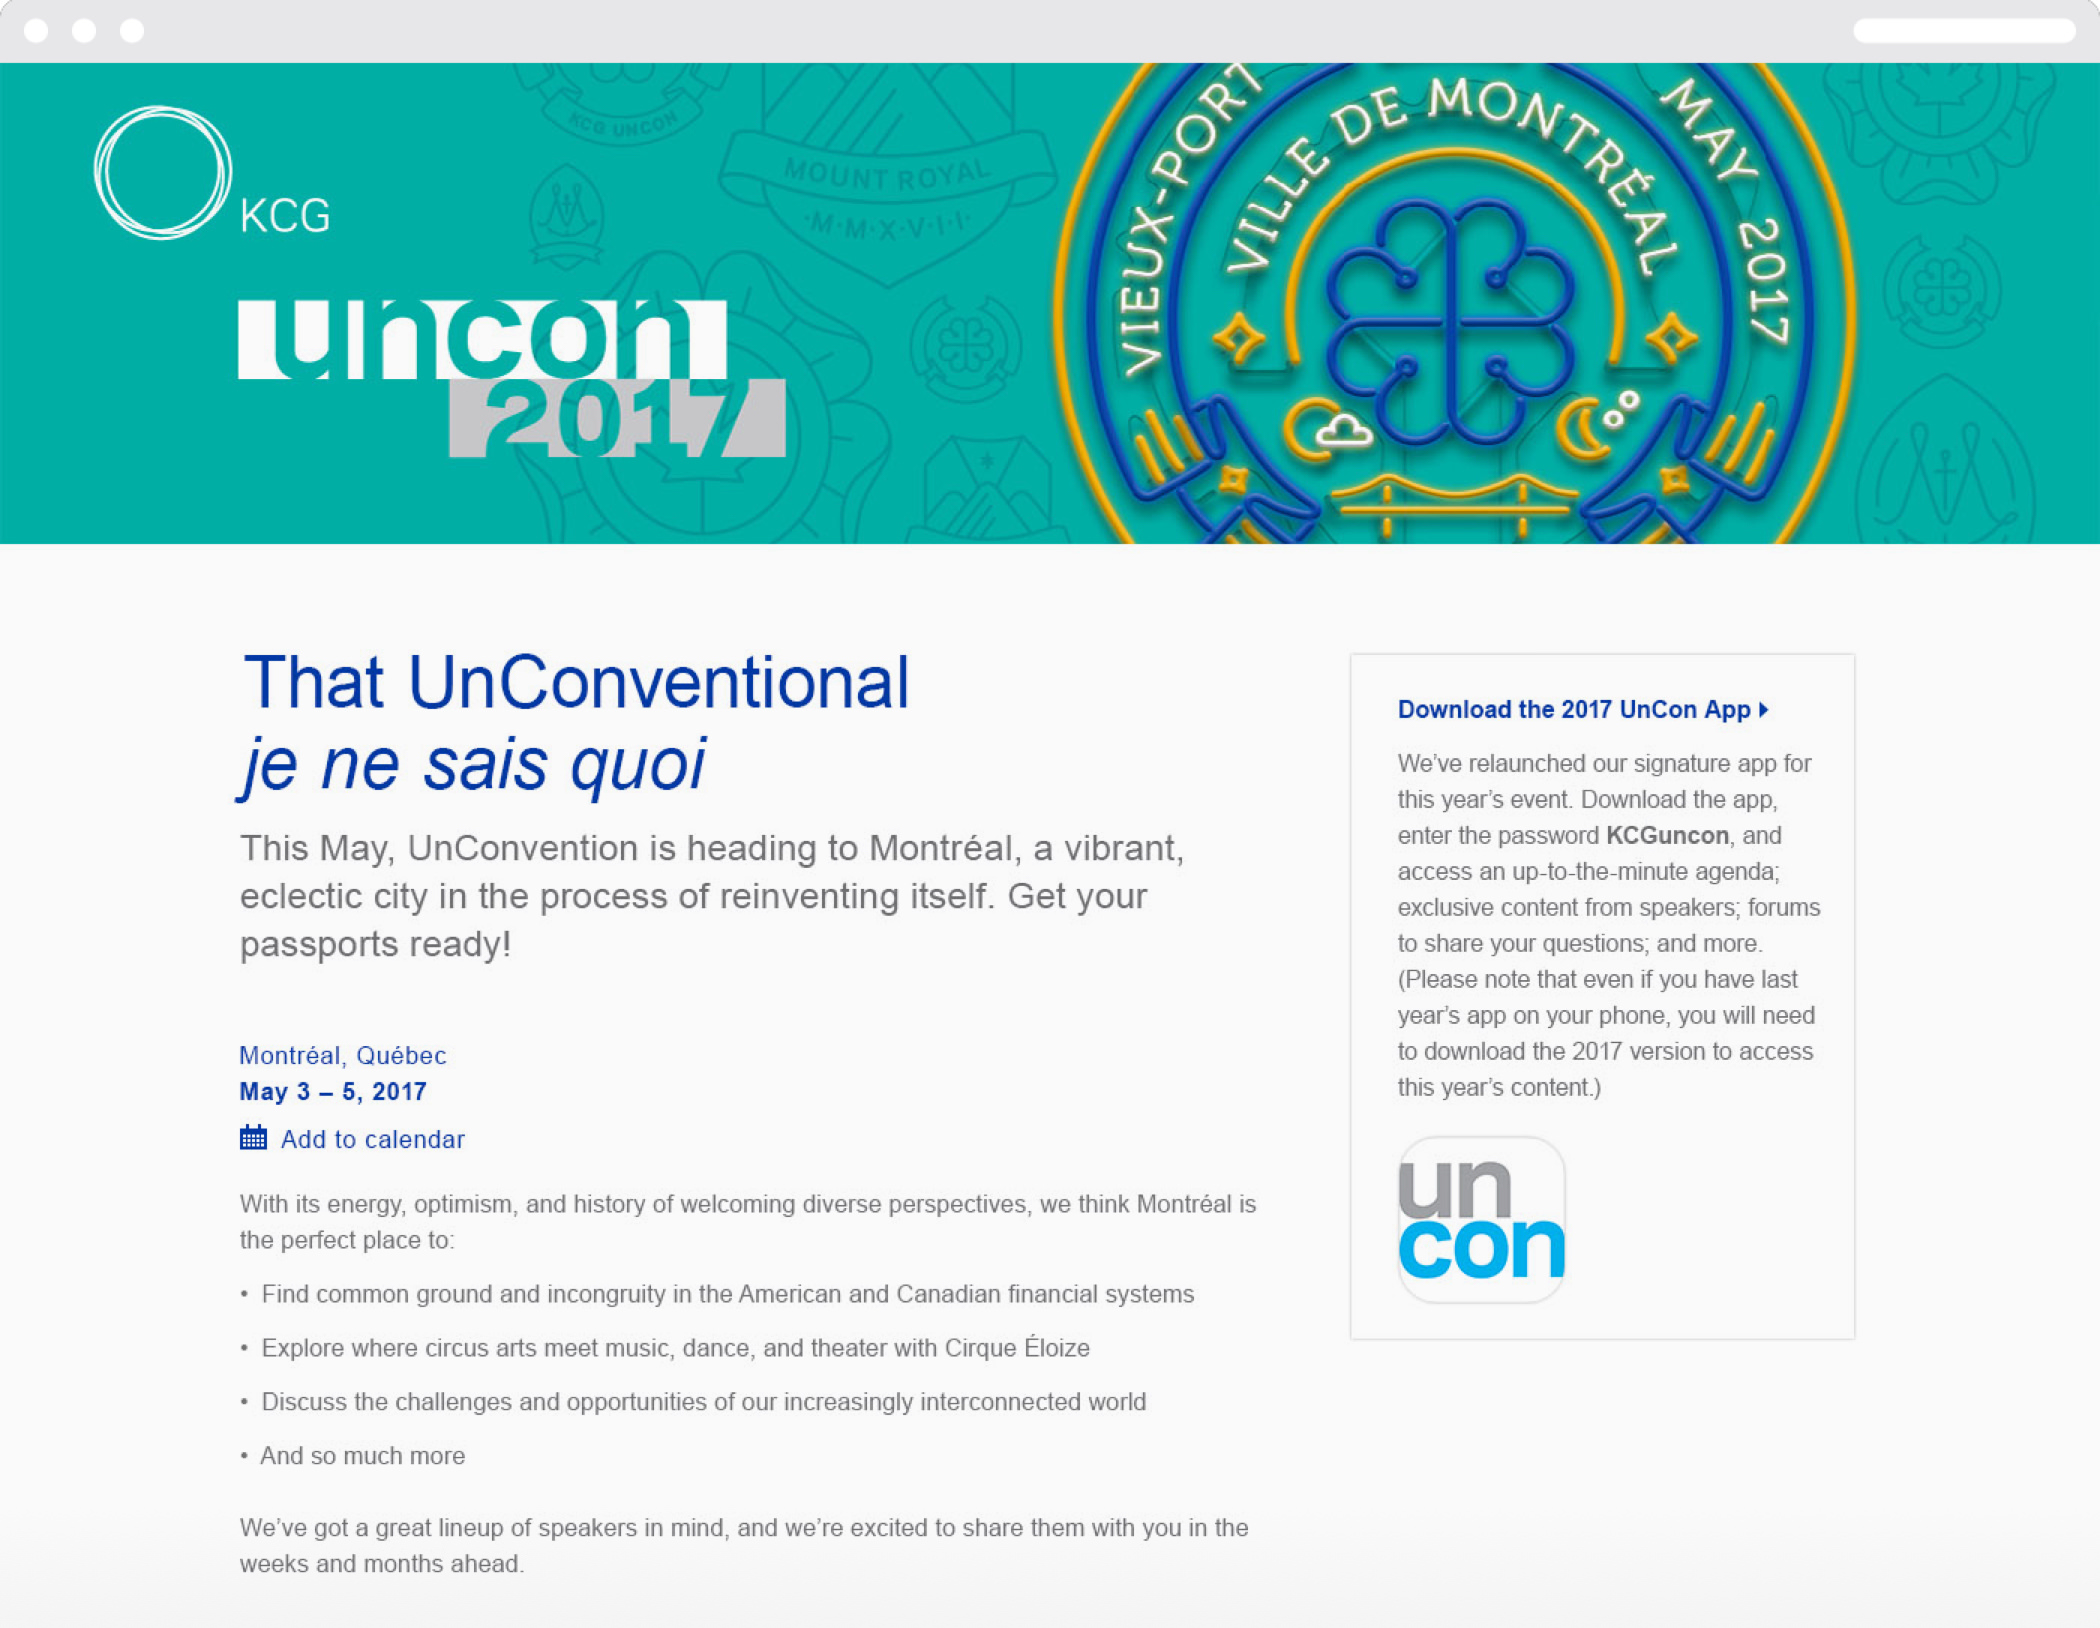 """Thinkso.com_Alt-Text_Tracker Thinkso.com_Alt-Text_Tracker 100% 10  The 2017 KCG Uncon event homepage with the headline """"That unconventional je ne sais quoi."""" and information about the event.  The 2017 KCG Uncon cevent homepage with the headline """"That unconventional je ne sais quoi."""" and information about the event. ; Cell C151        The 2017 KCG Uncon event homepage with the headline """"That unconventional je ne sais quoi."""" and information about the event."""